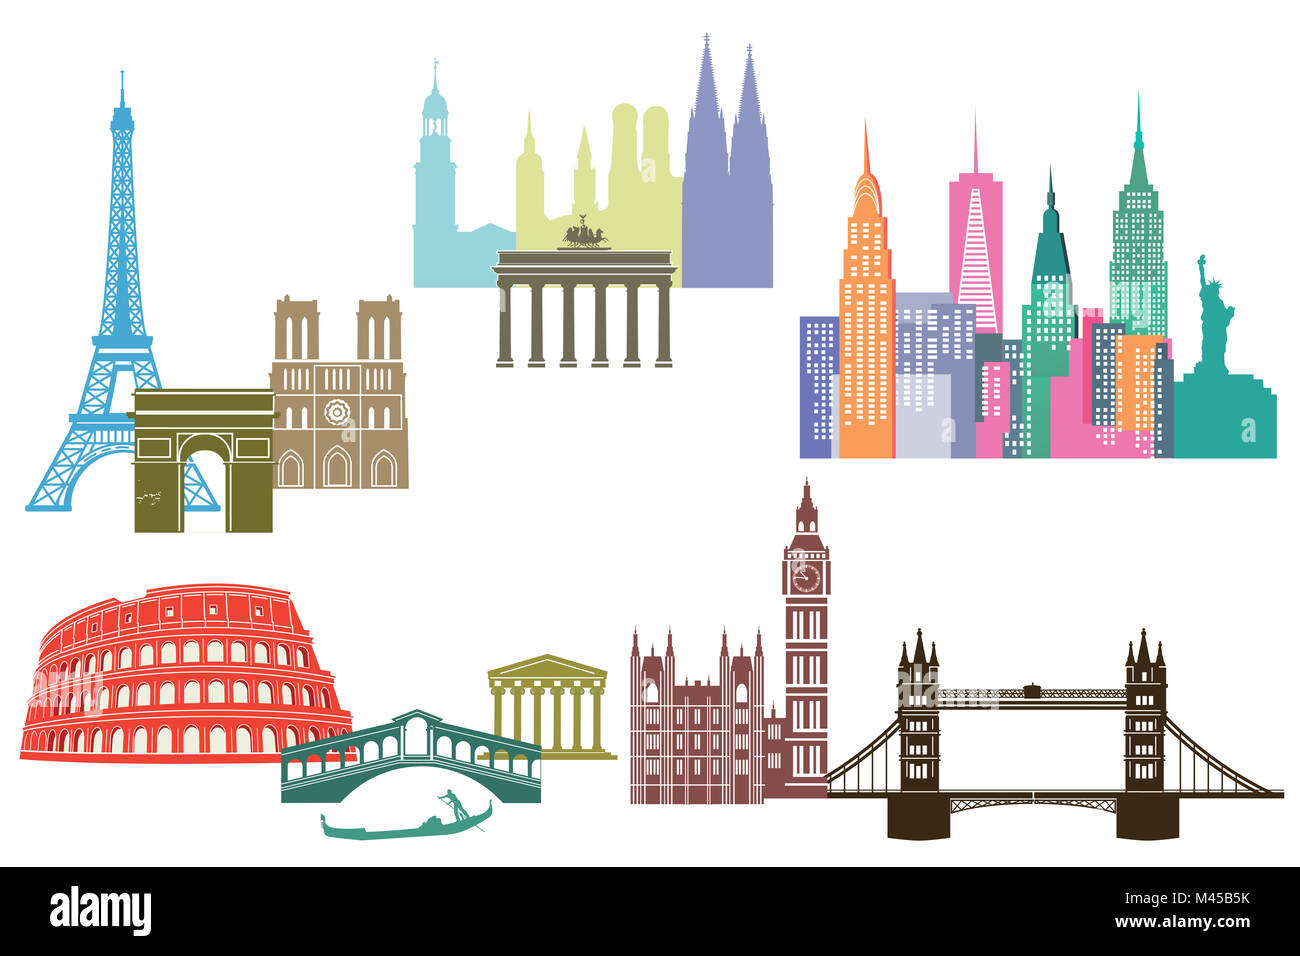 monument and skylines of cities around the world - Stock Image